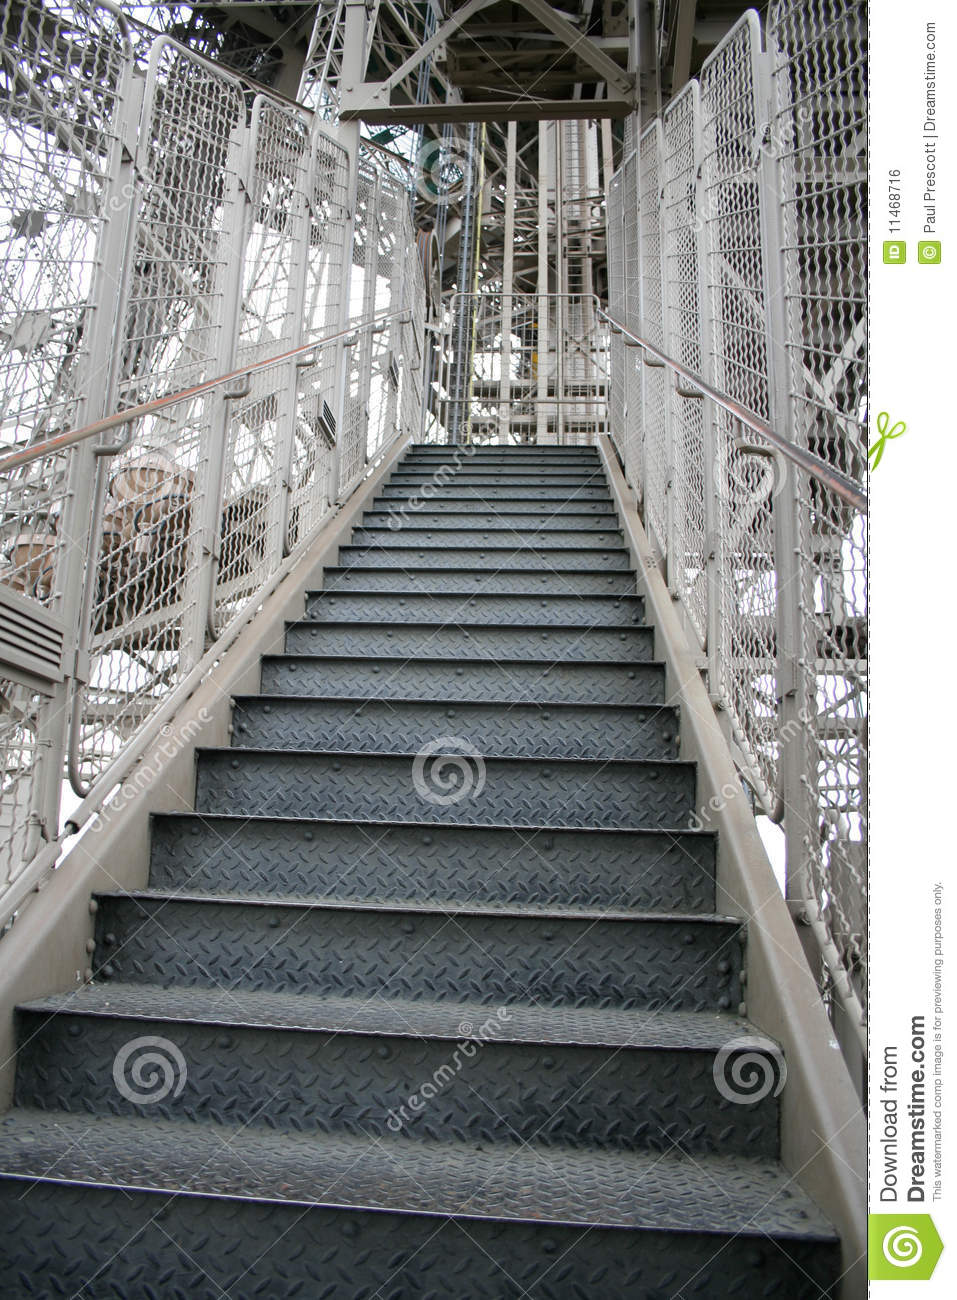 Eiffel Tower Stairs : Eiffel tower stairs stock photo image of outdoors